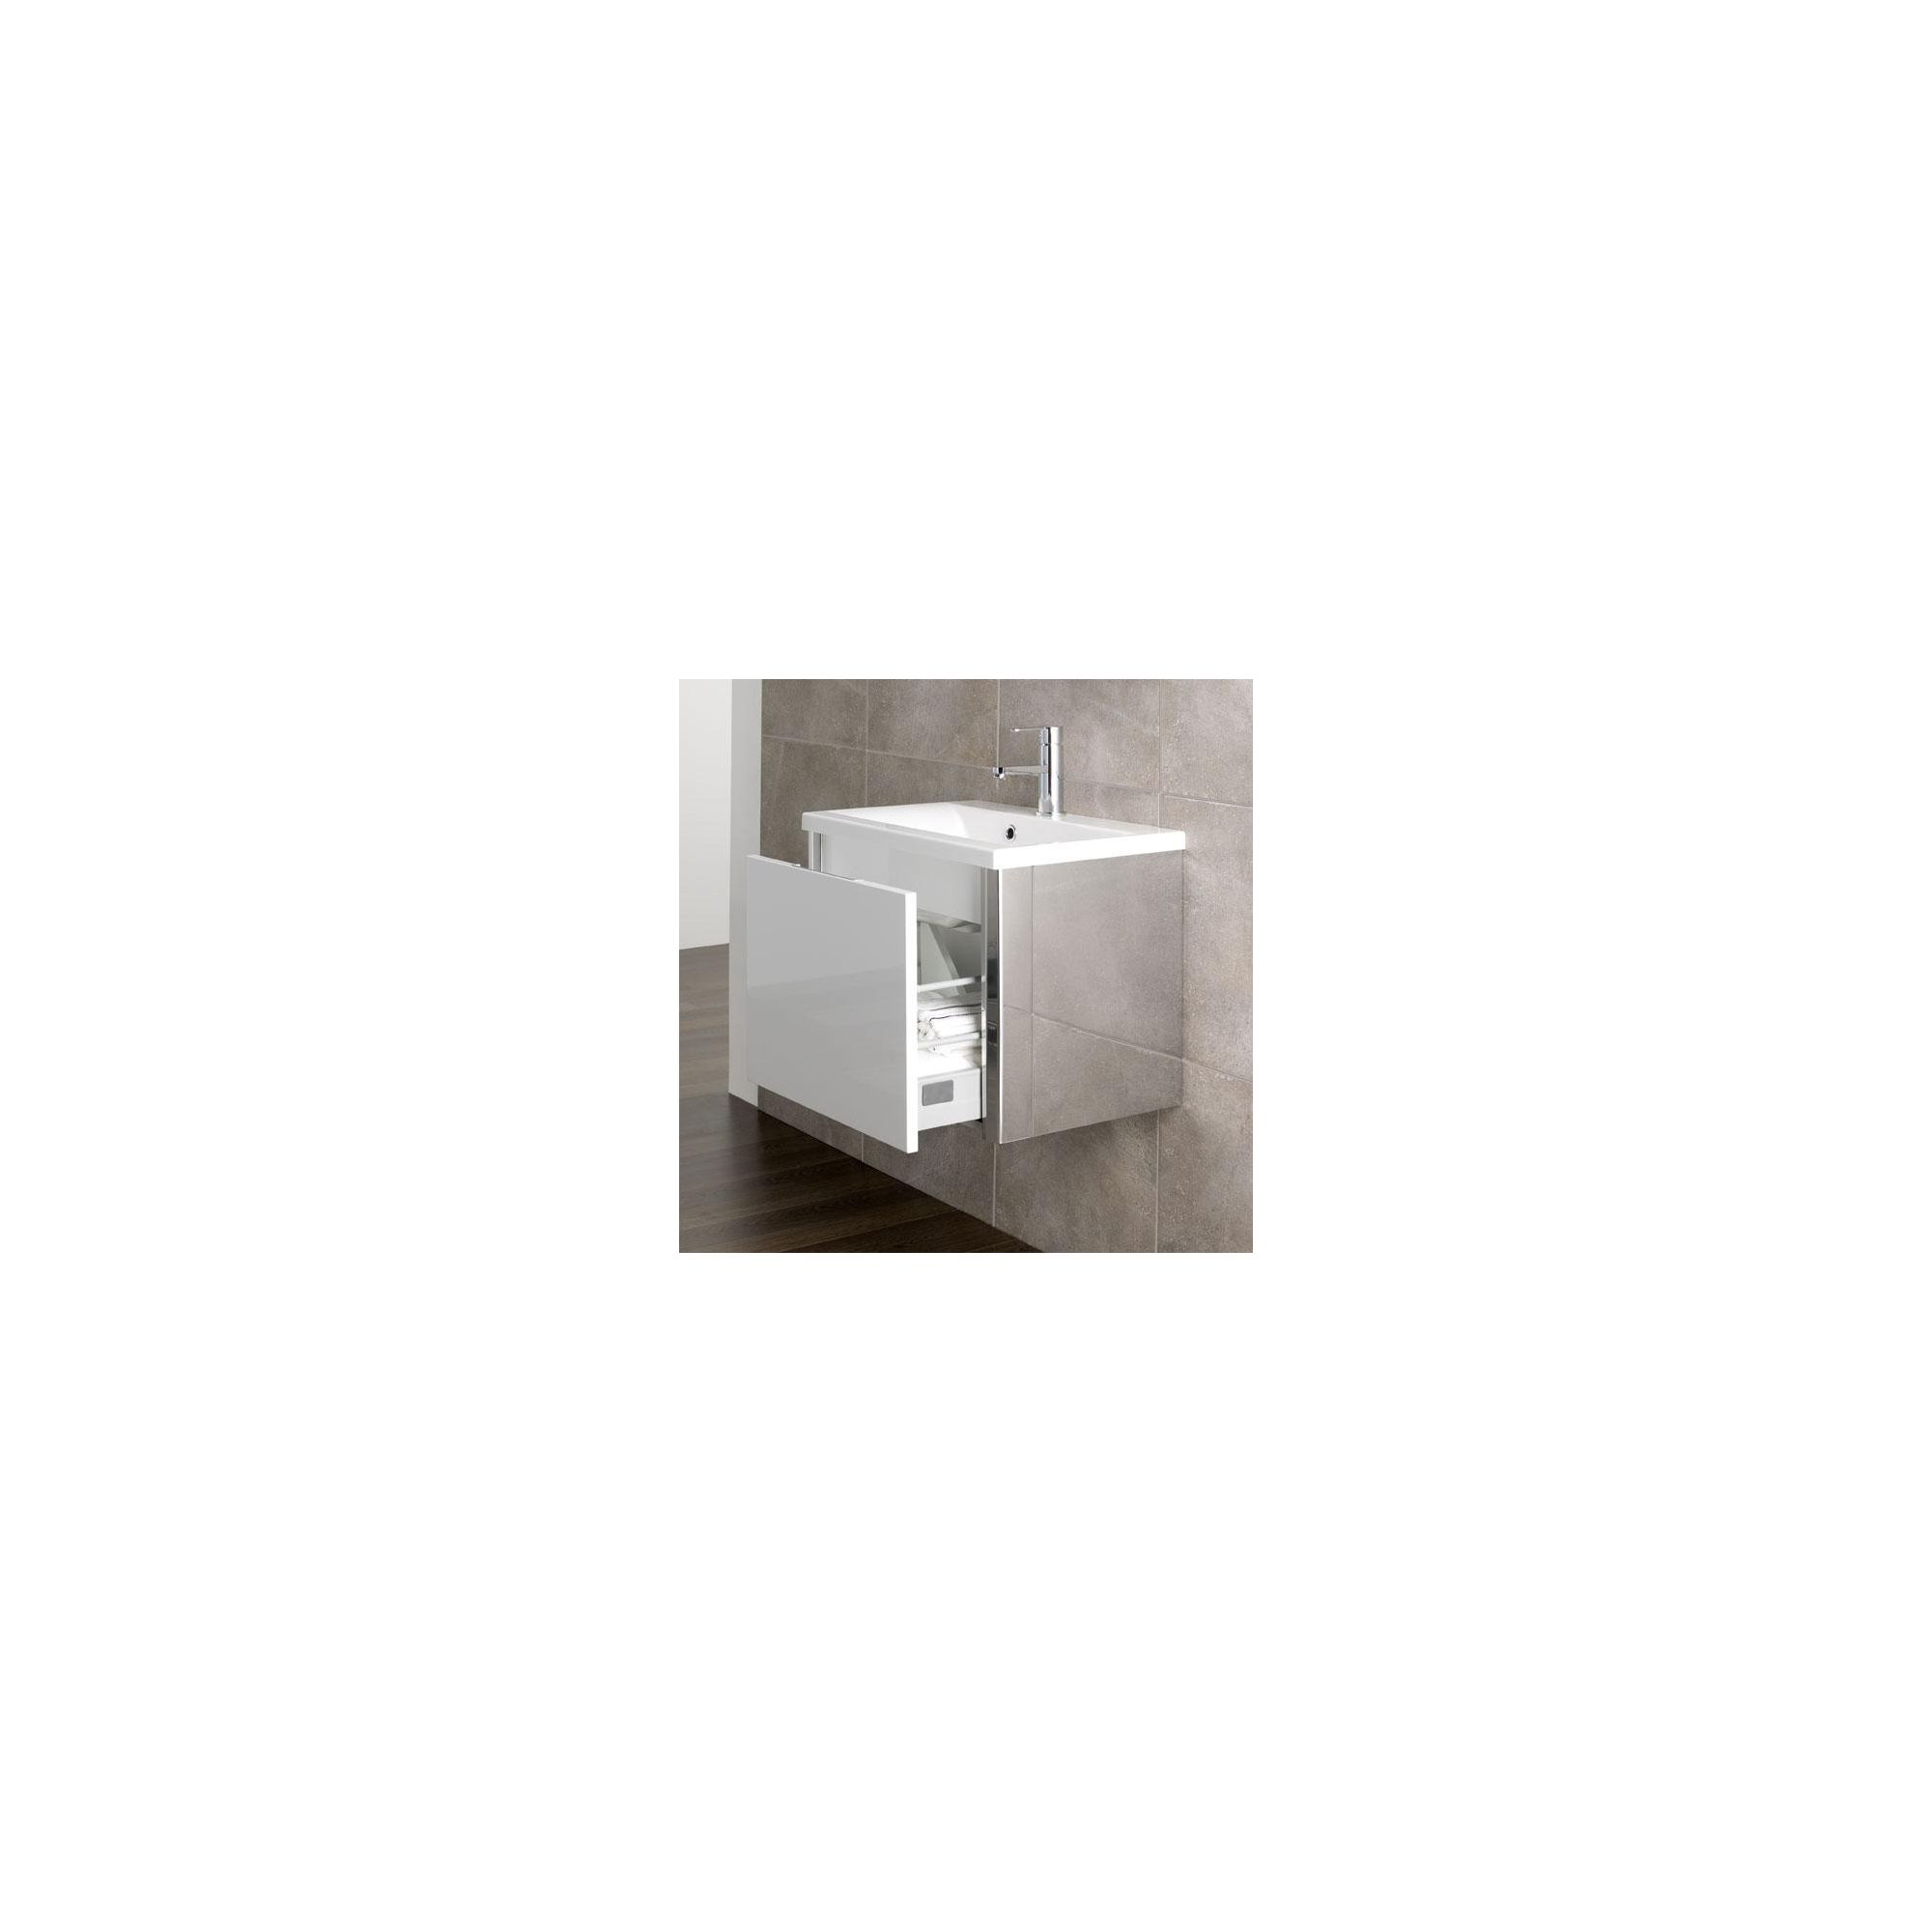 Duchy Trehane White Wall Hung 1 Drawer Vanity Unit and Basin - 580mm Wide x 390mm Deep